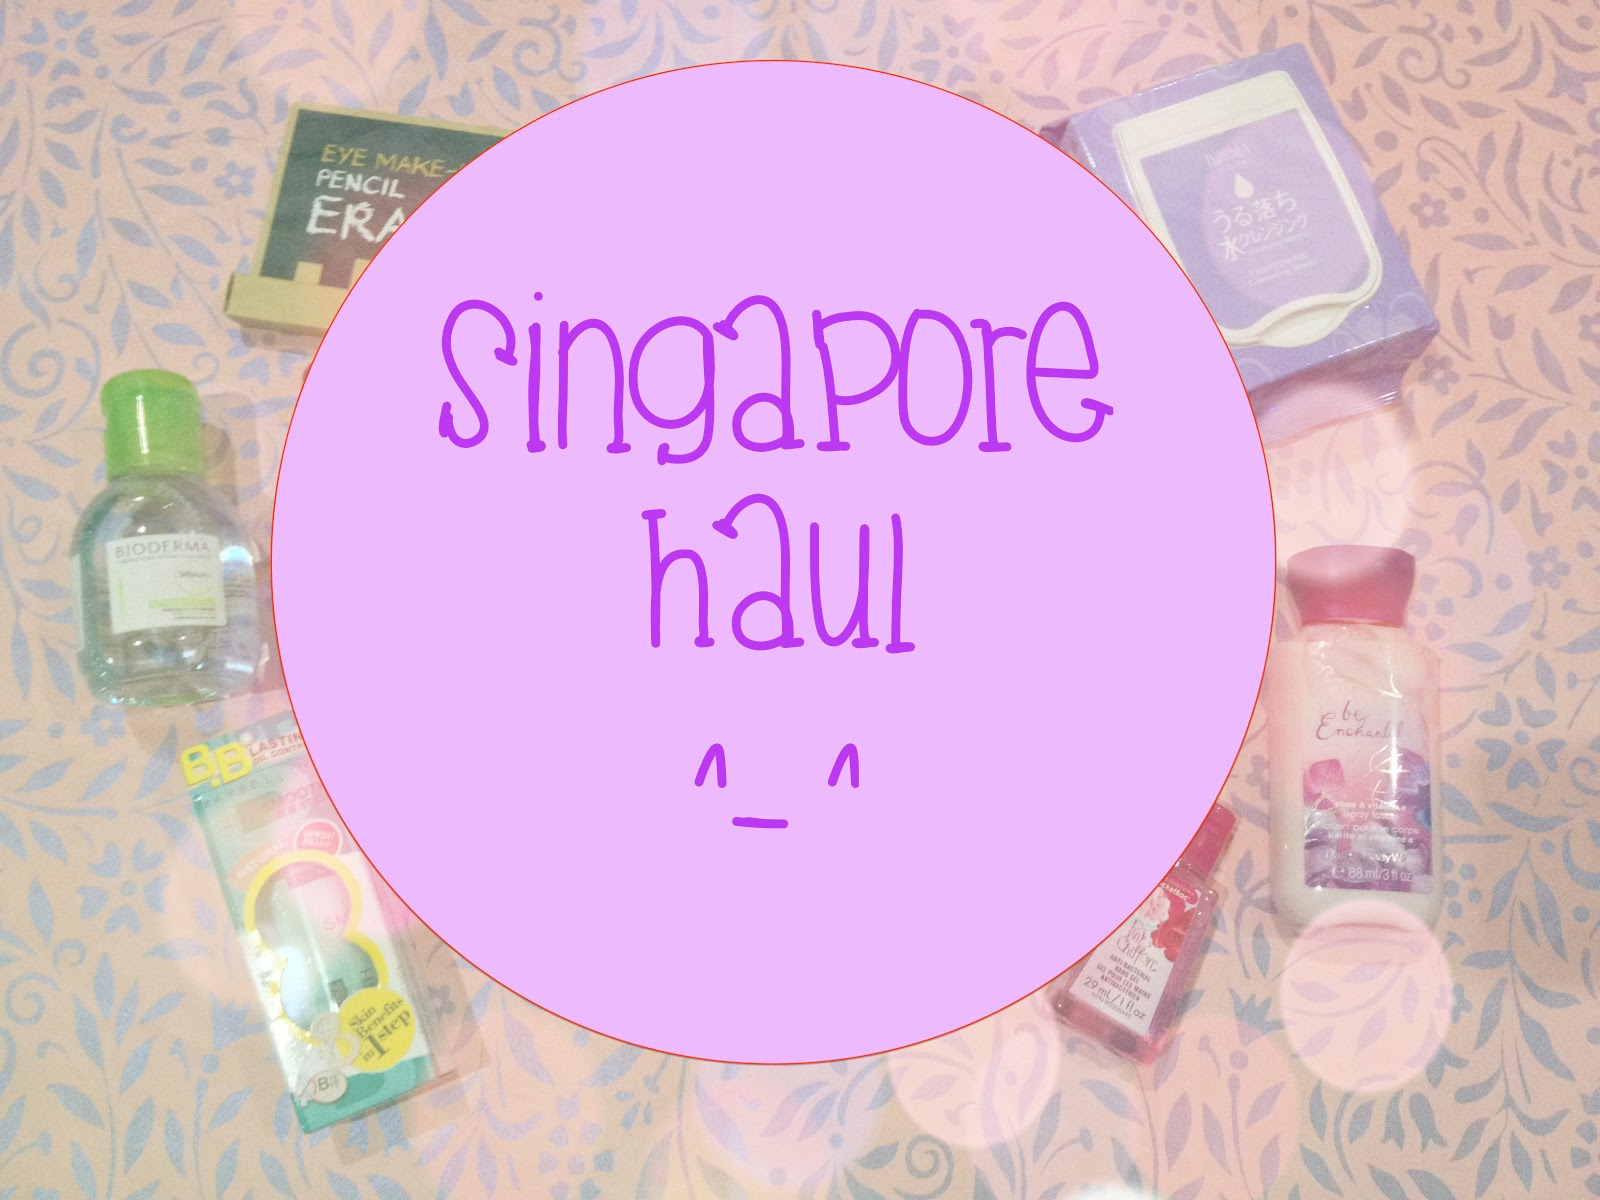 Singapore Beauty Haul! by Jessica Alicia